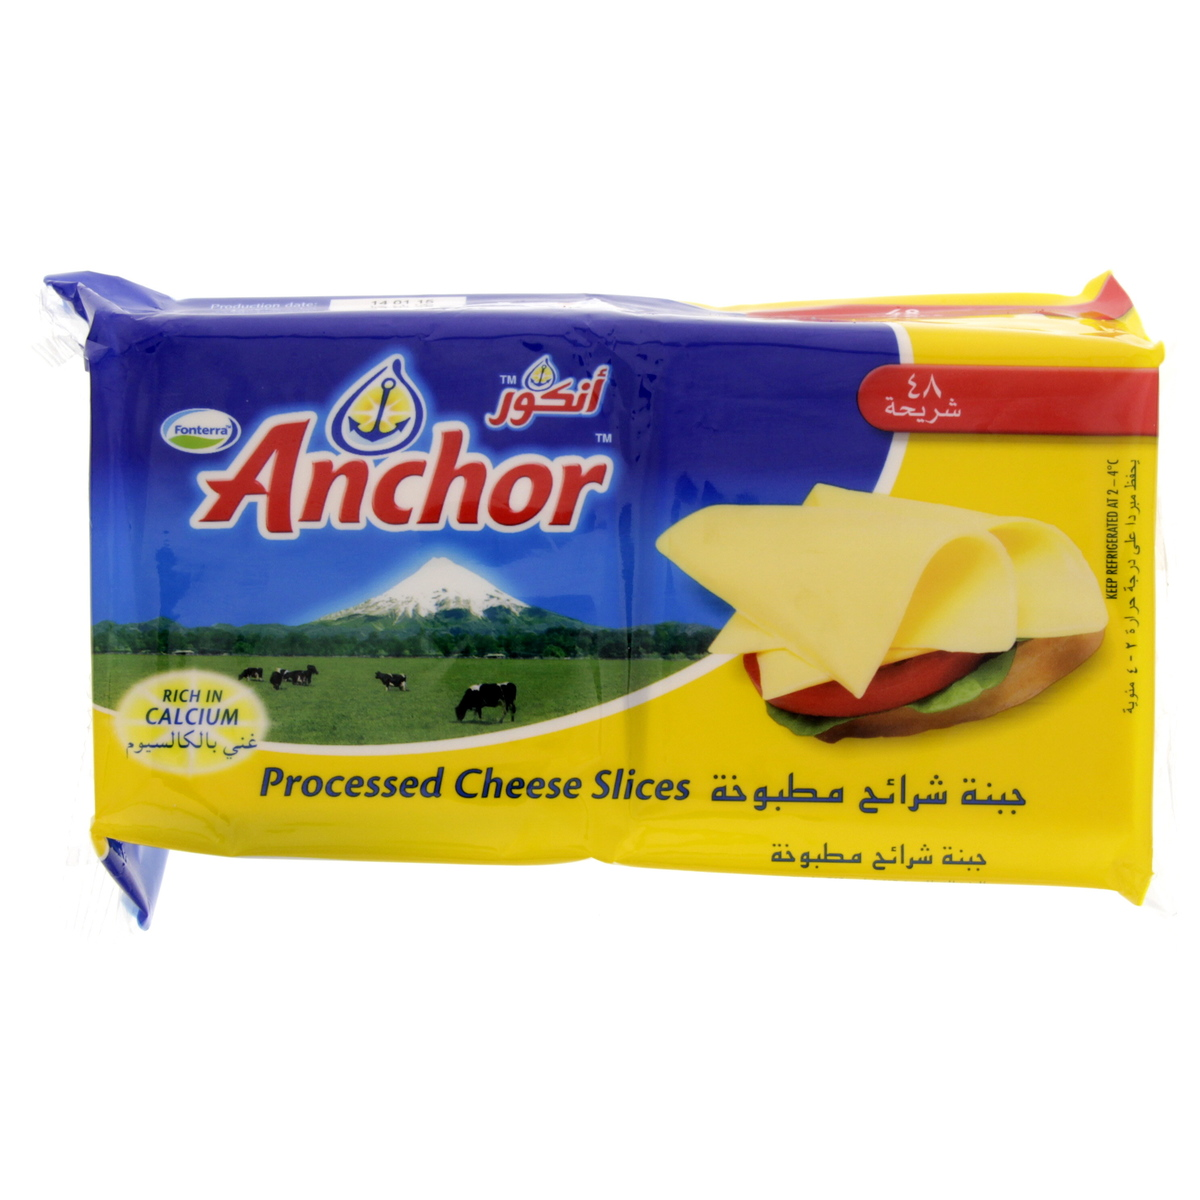 Buy Anchor Processed Cheese Slices 768g Online Lulu Hypermarket Qatar